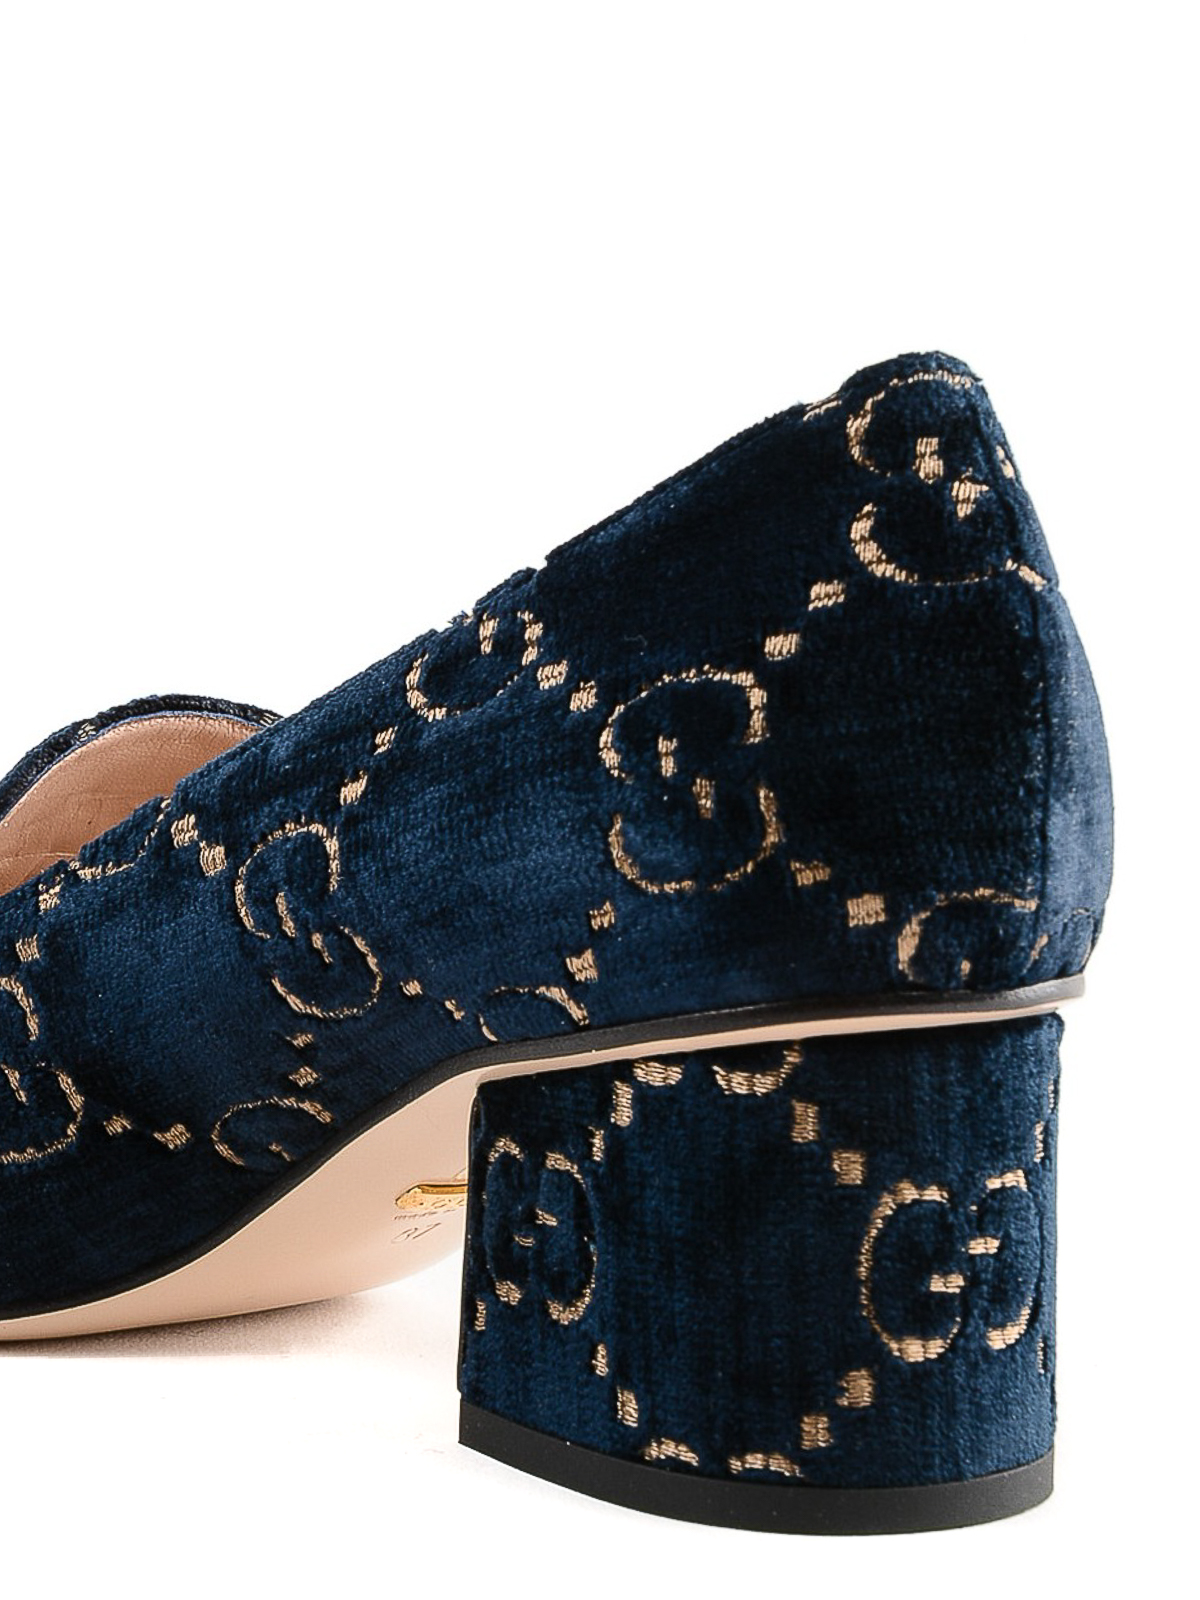 98c5dbe5b0d209 Gucci - GG dark blue velvet heeled loafers - court shoes ...